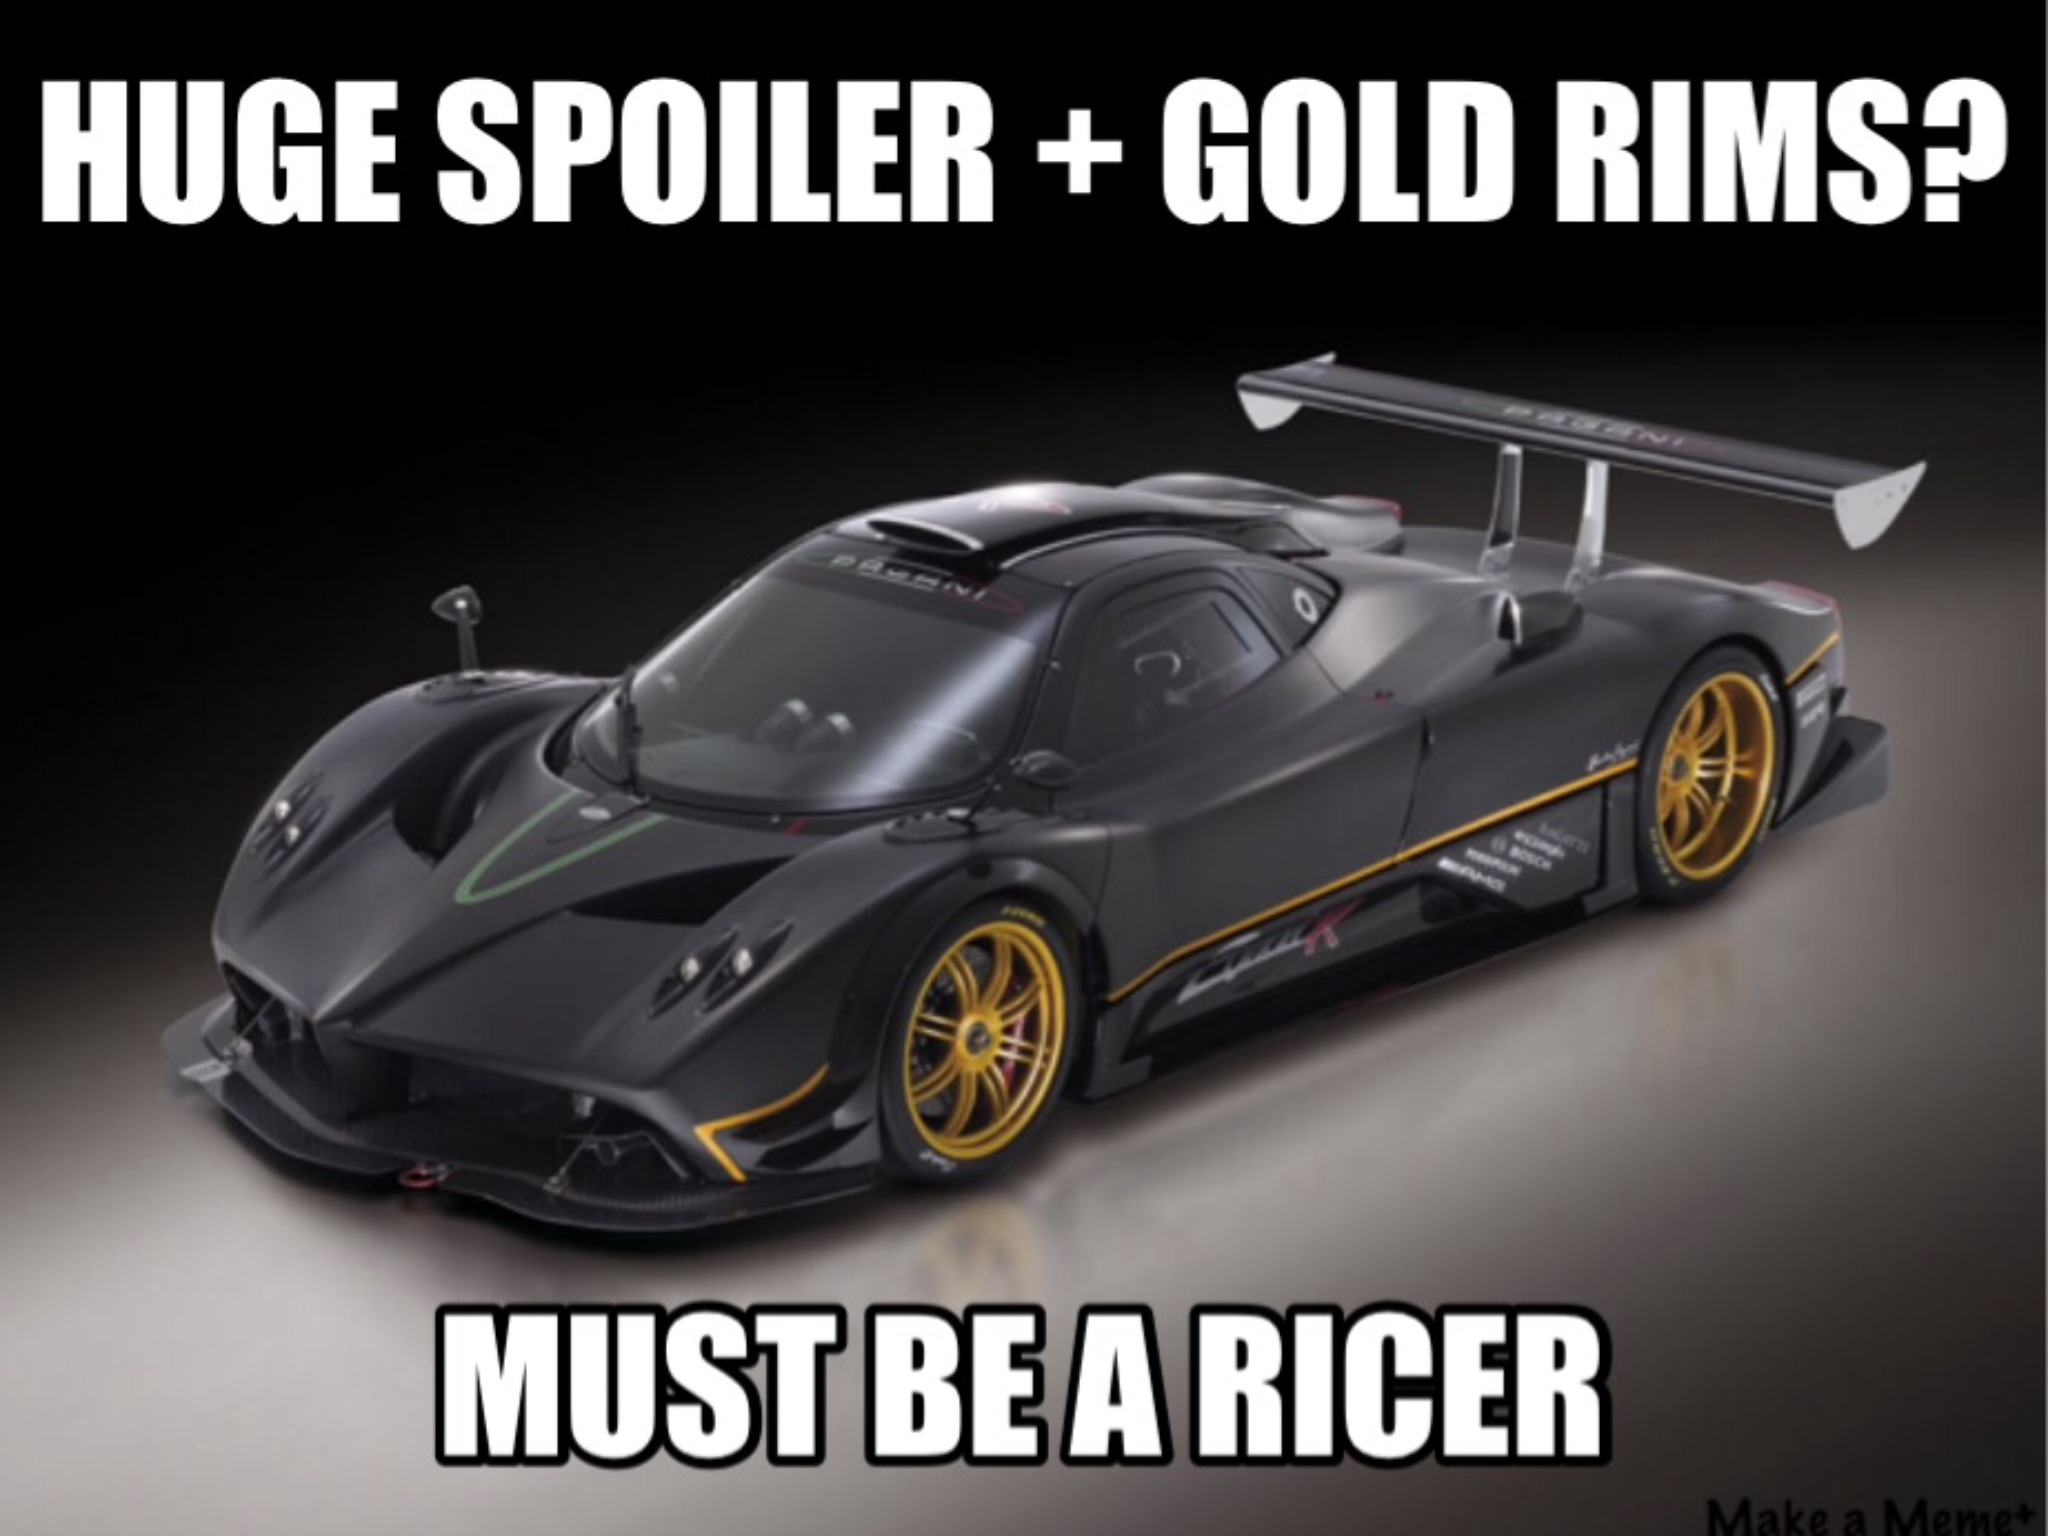 What a ricer